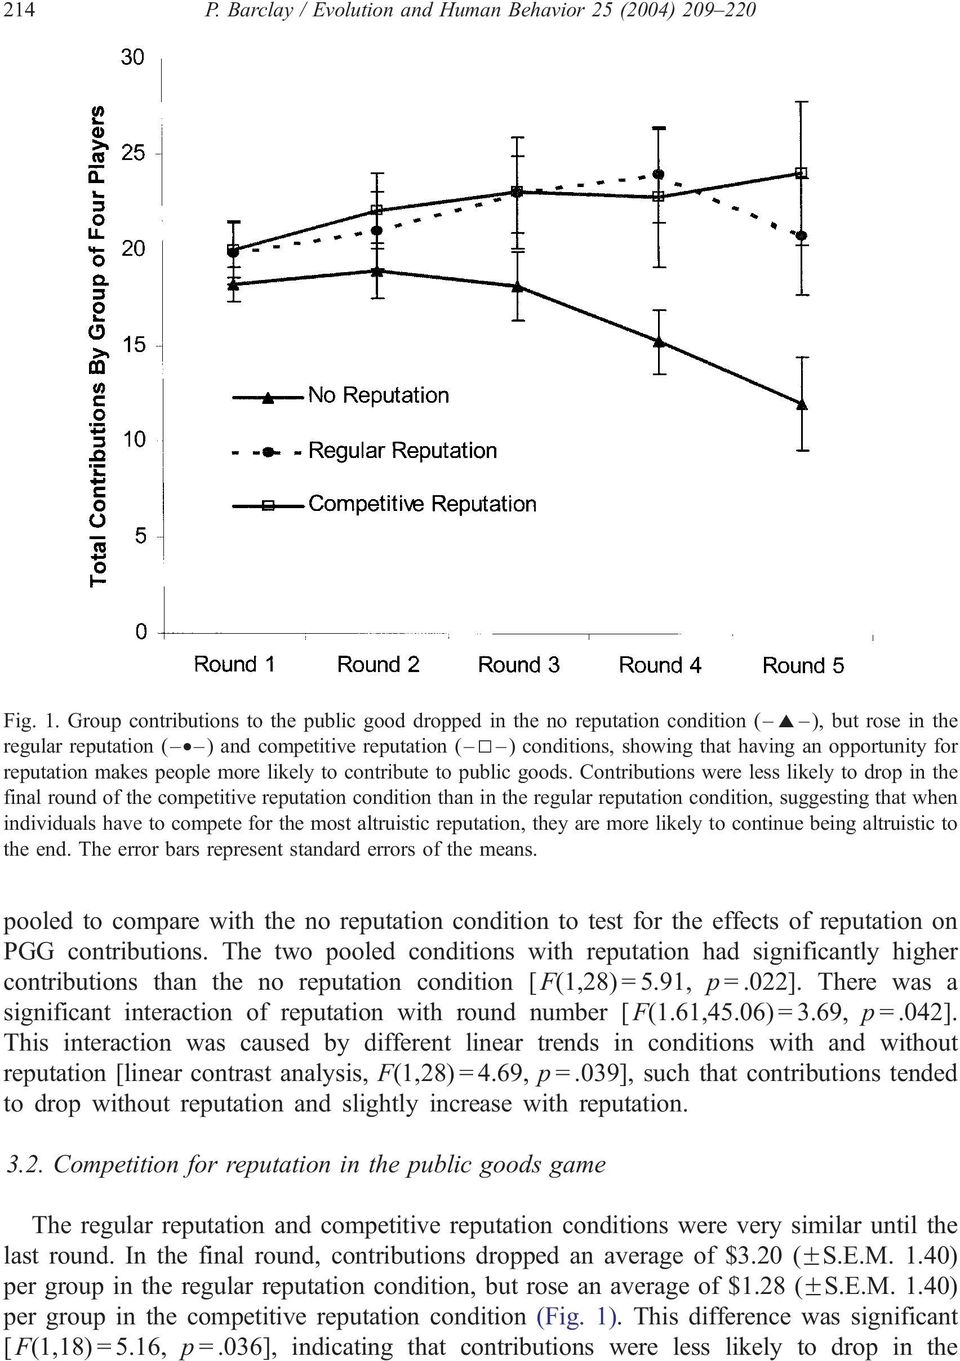 Contributions were less likely to drop in the final round of the competitive reputation condition than in the regular reputation condition, suggesting that when individuals have to compete for the